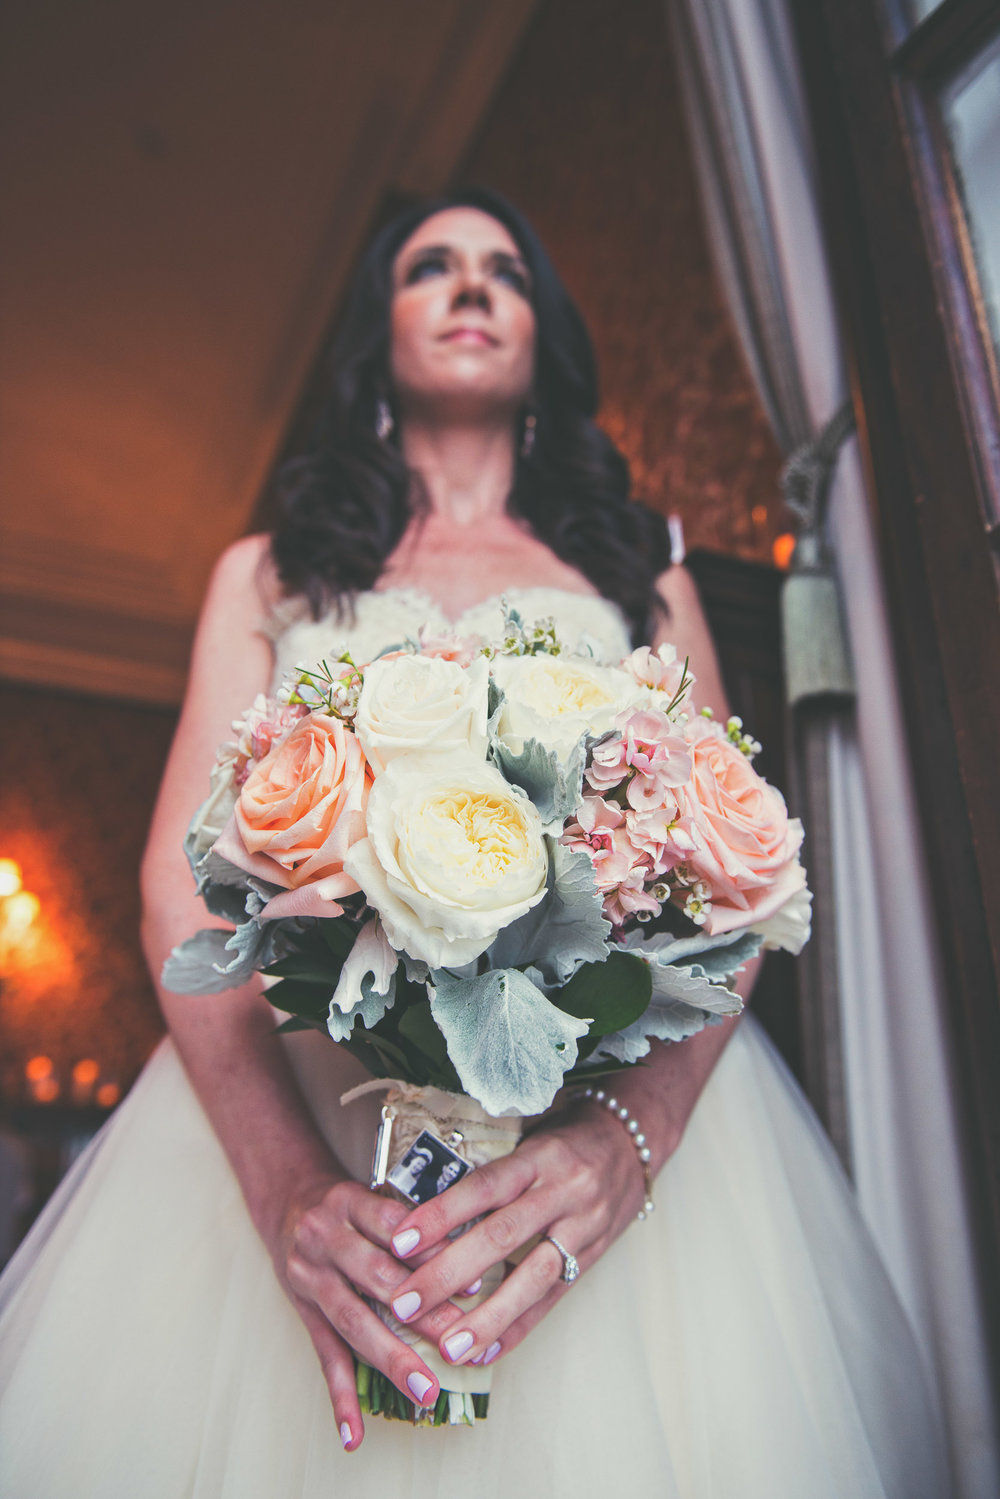 Bride with flowers - Weddings - Photo credit Nicola Bailey.jpg